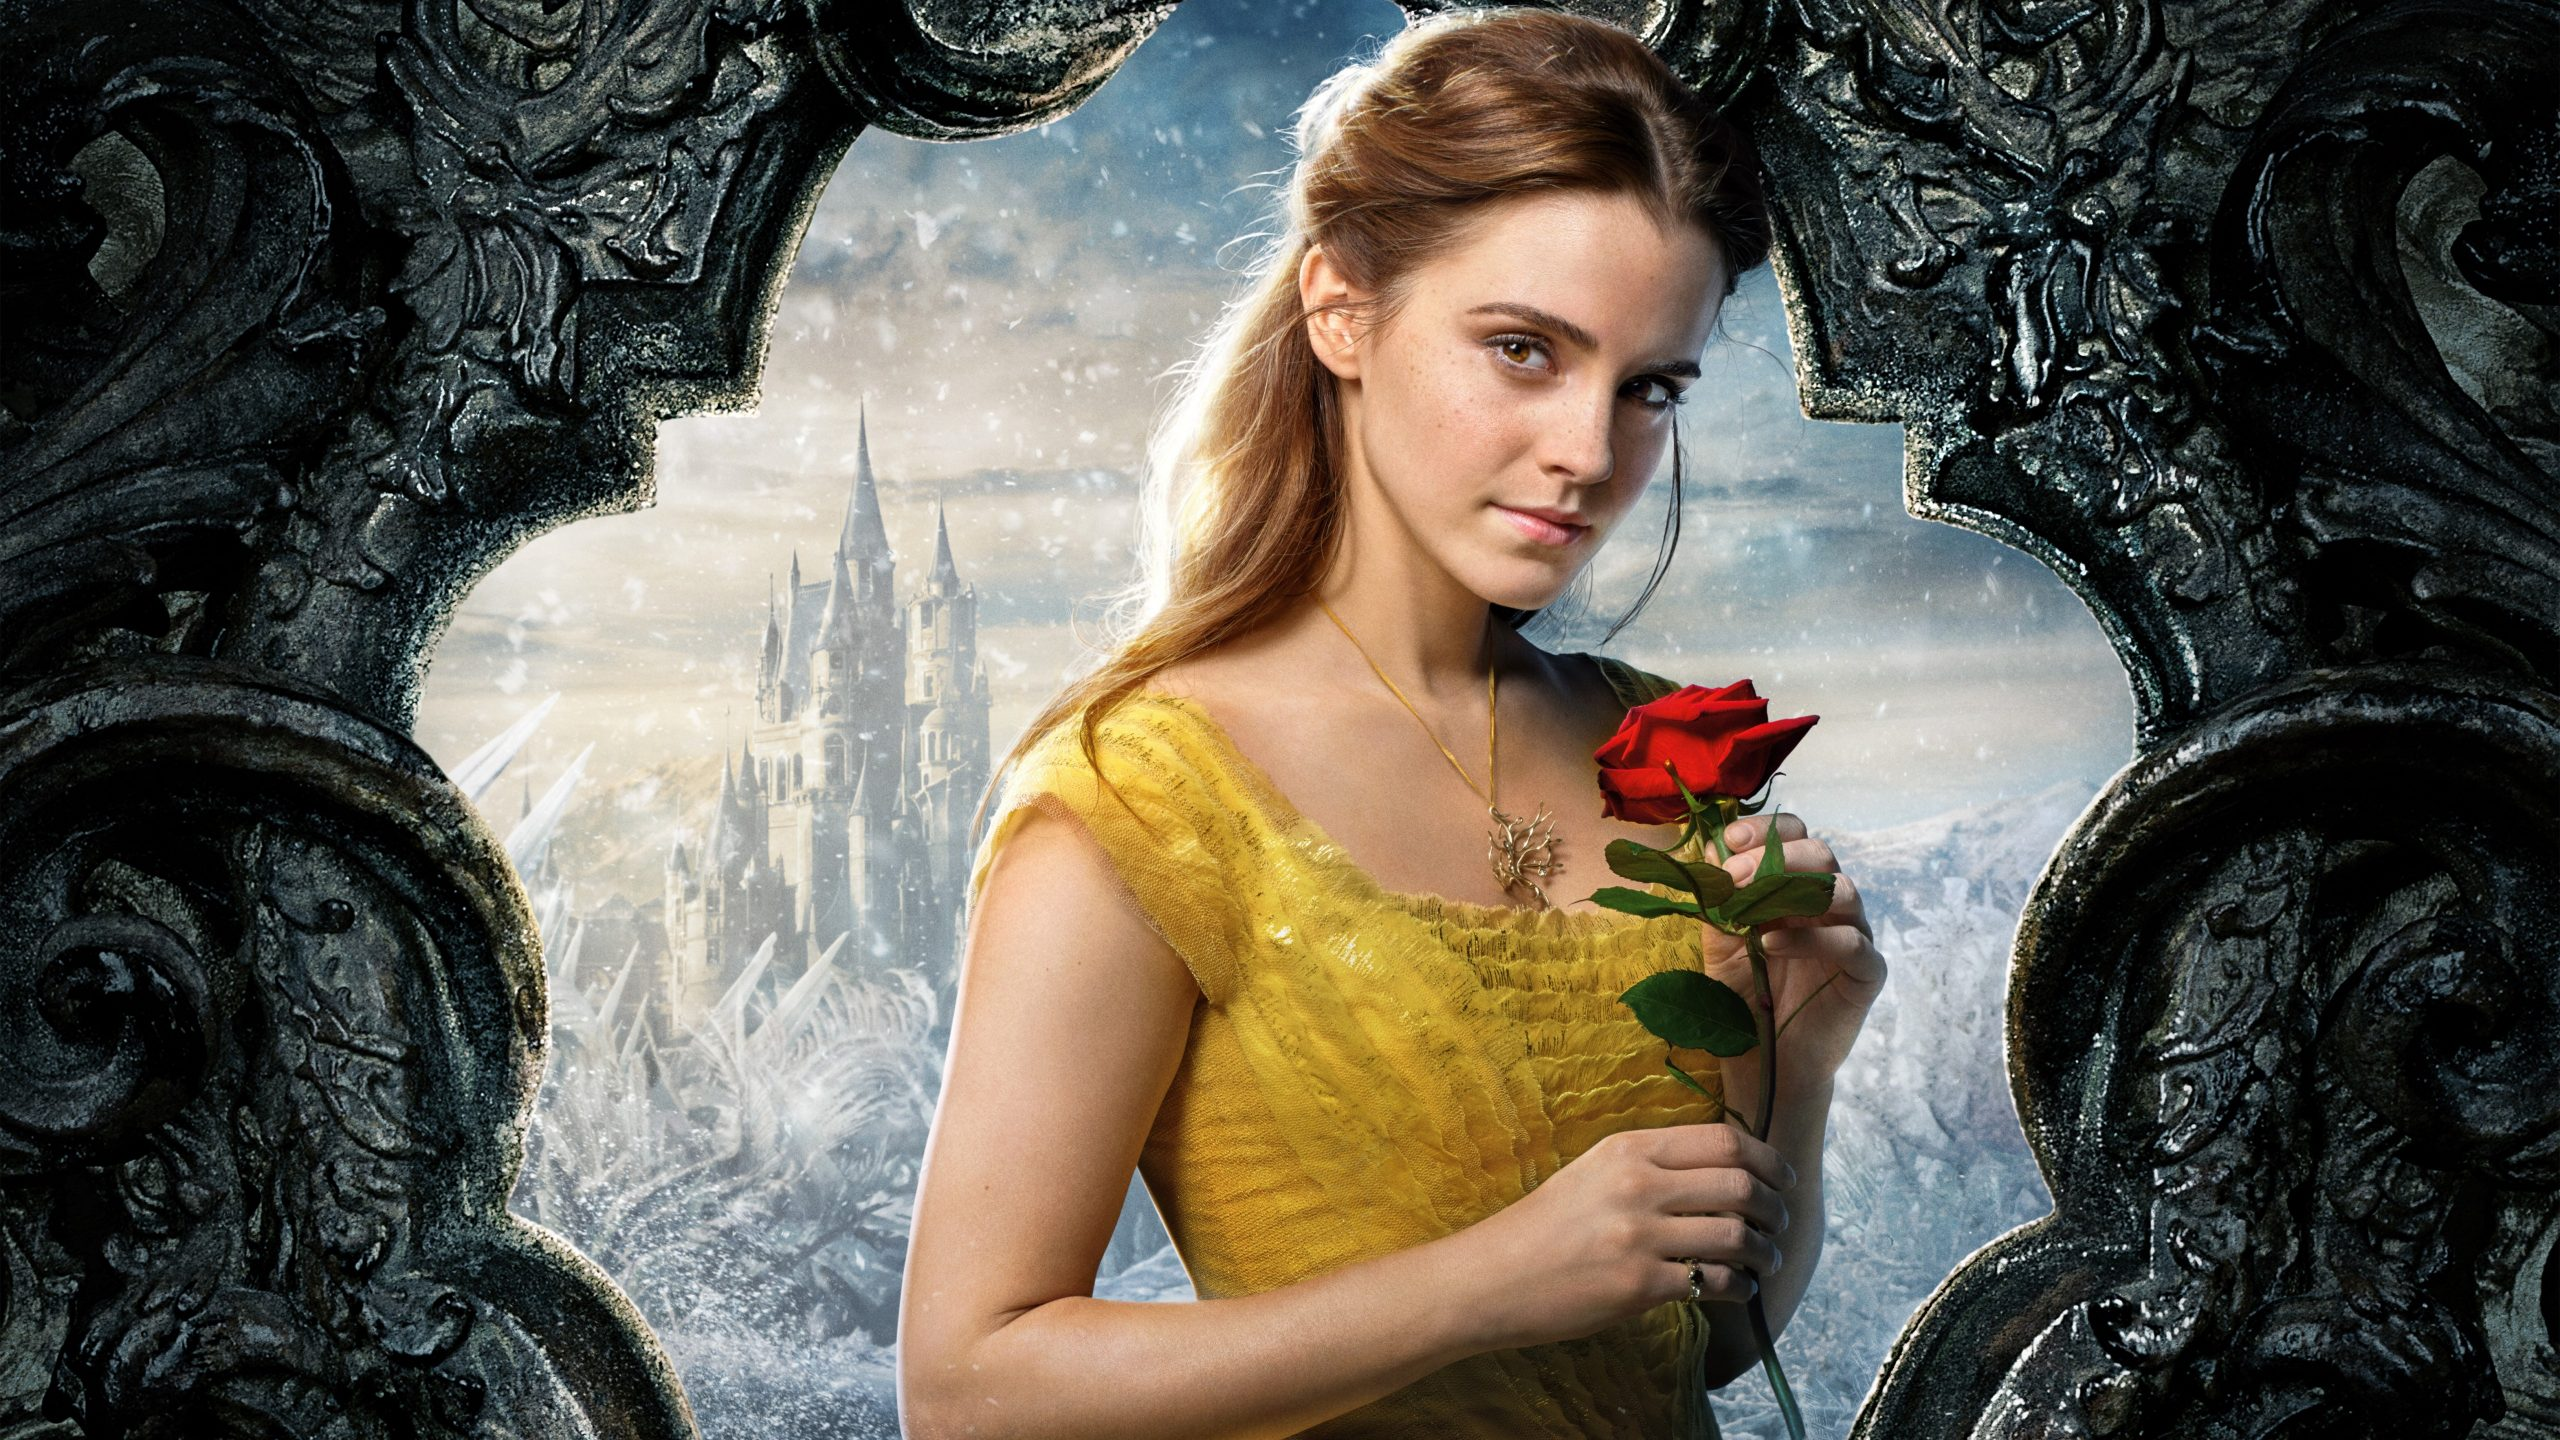 Beauty And The Beast Captions